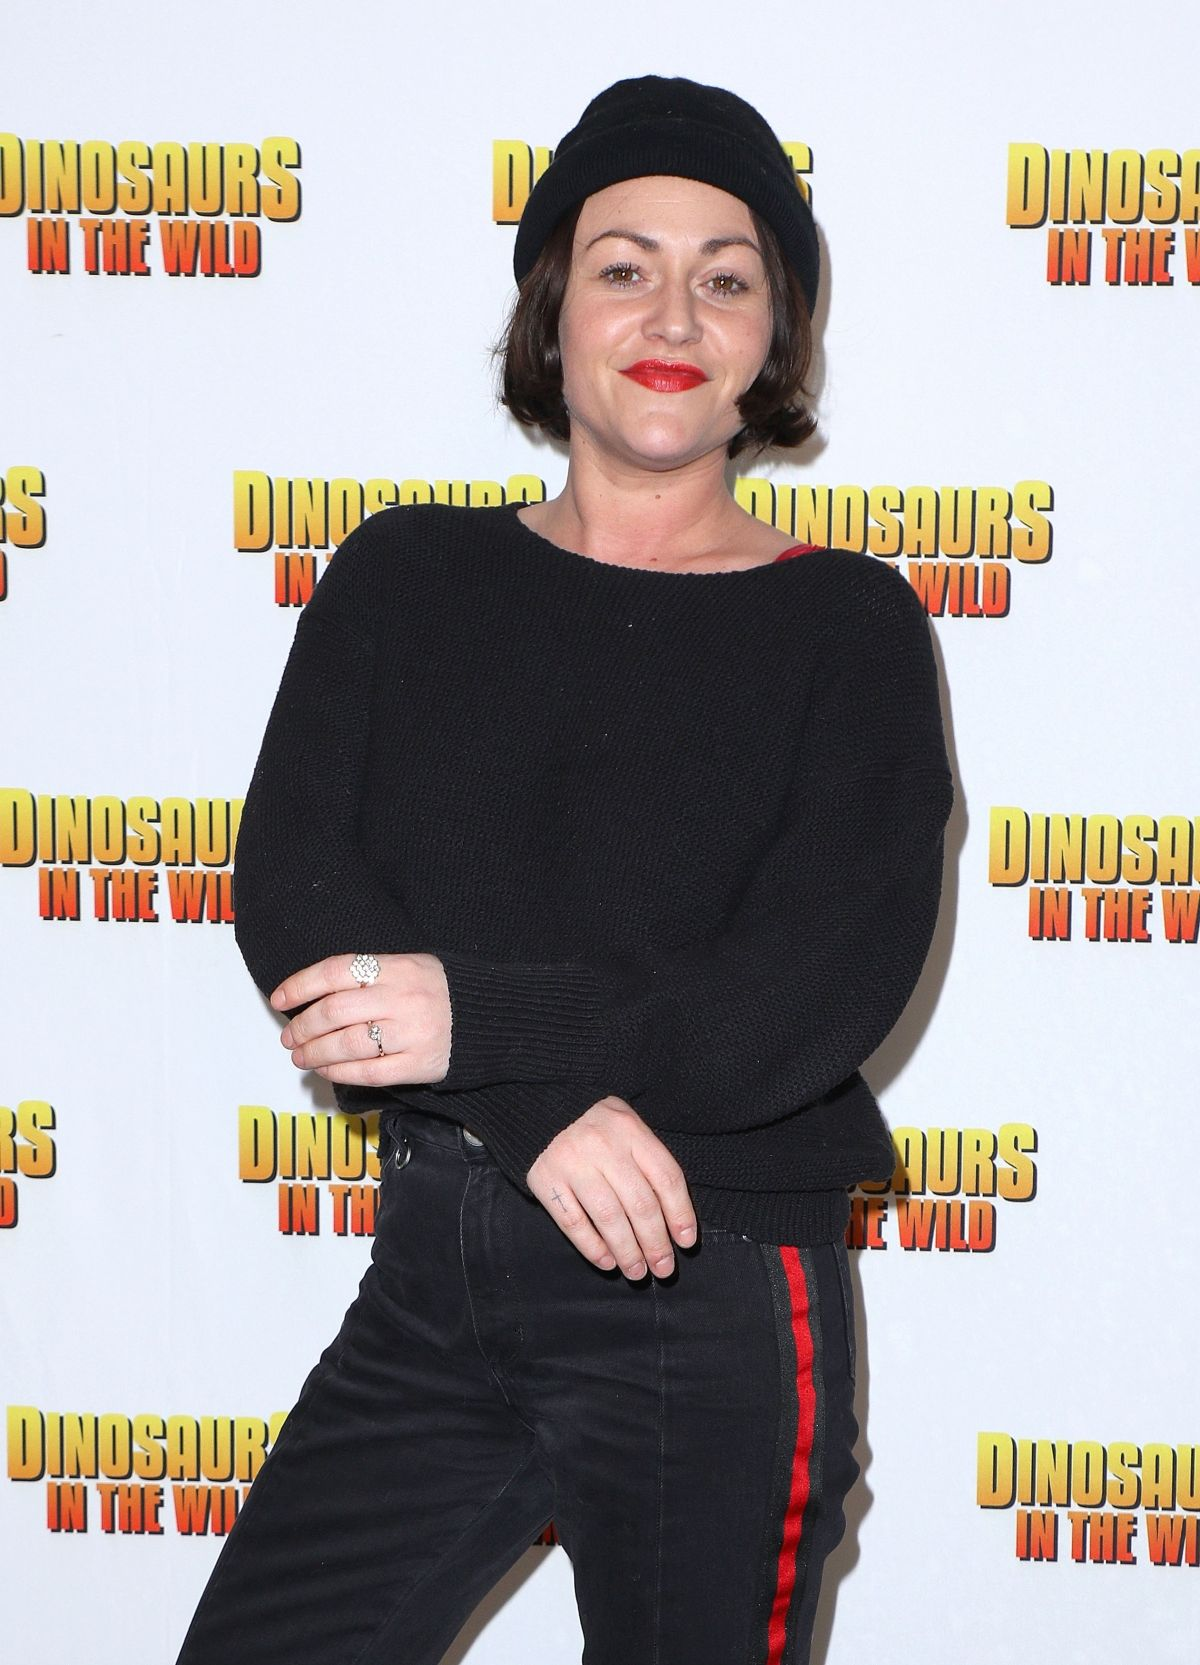 JAIME WINSTONE at Dinosaurs in the Wild Exhibition in London